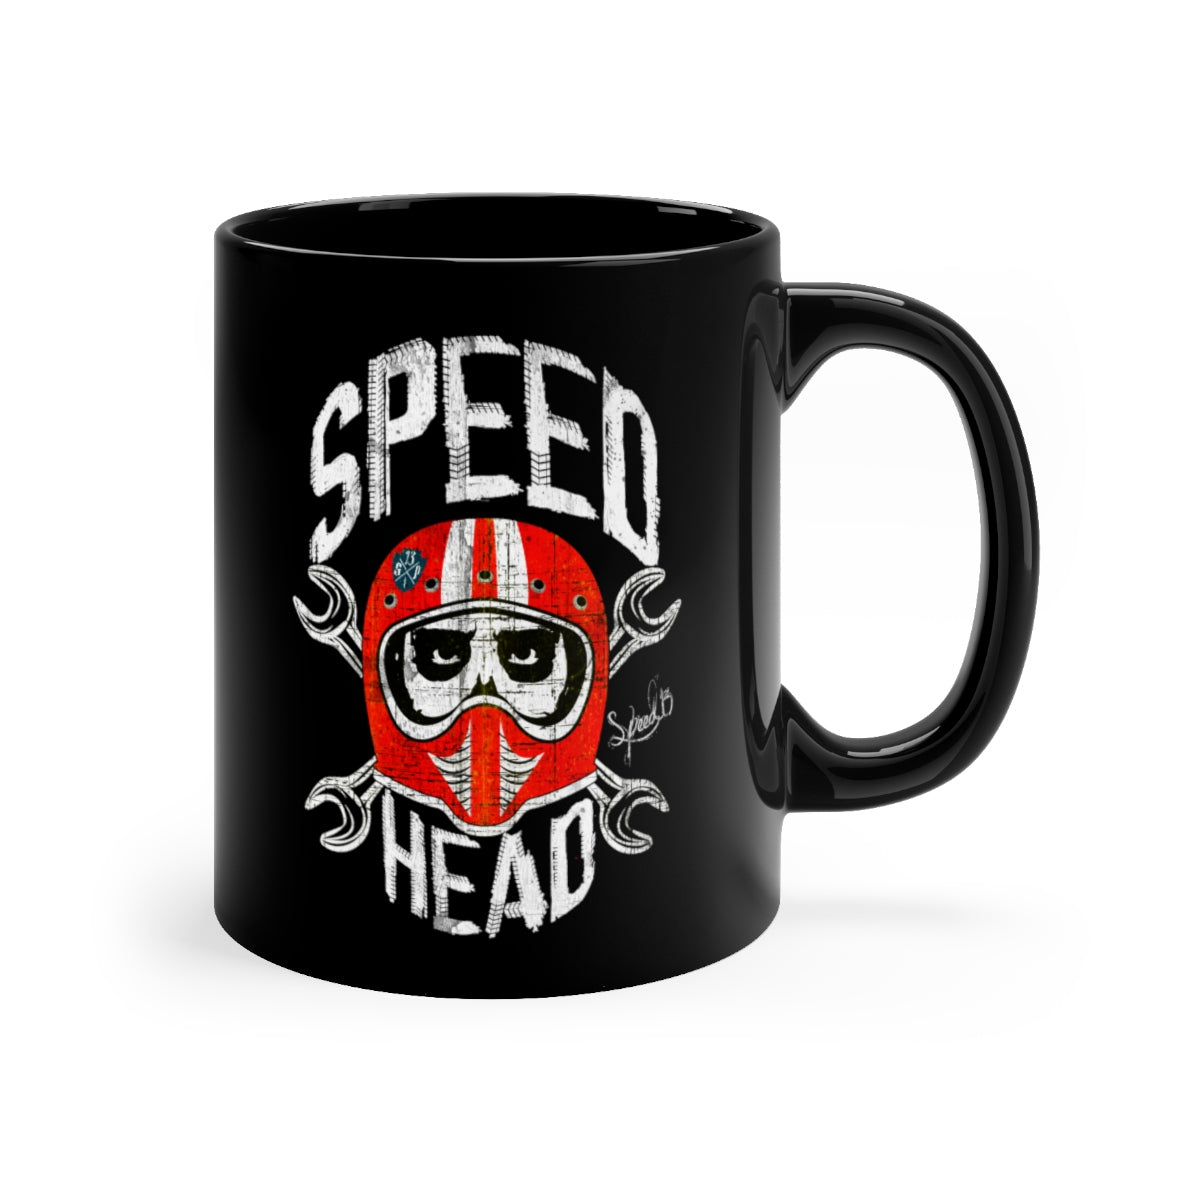 Speed Head - Black mug 11oz